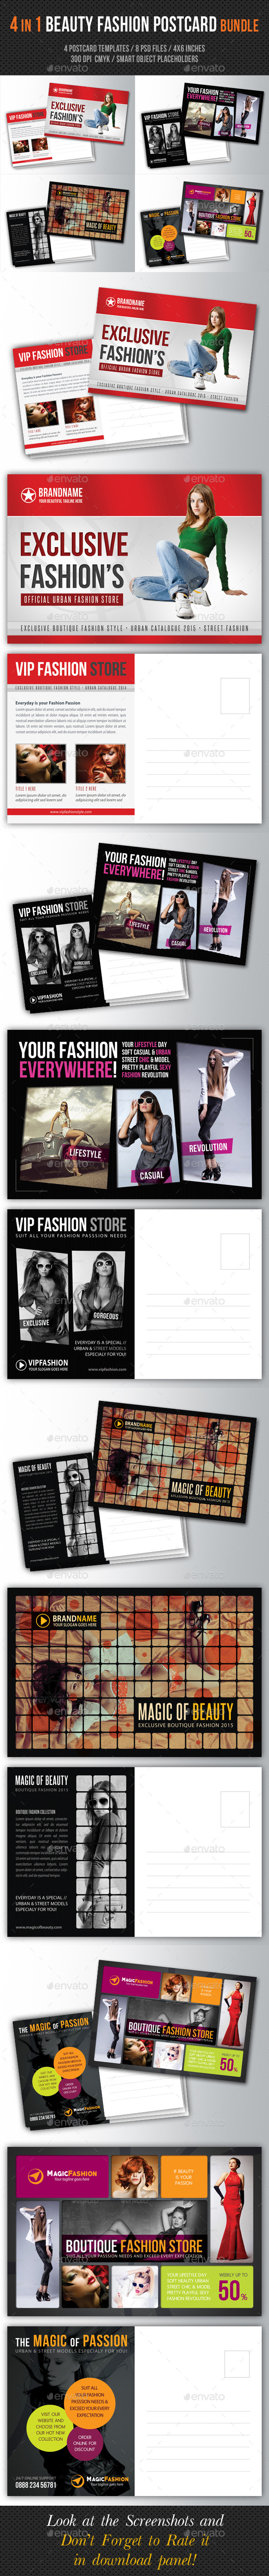 4 in 1 Fashion and Beauty Postcard Template Bundle - Cards & Invites Print Templates